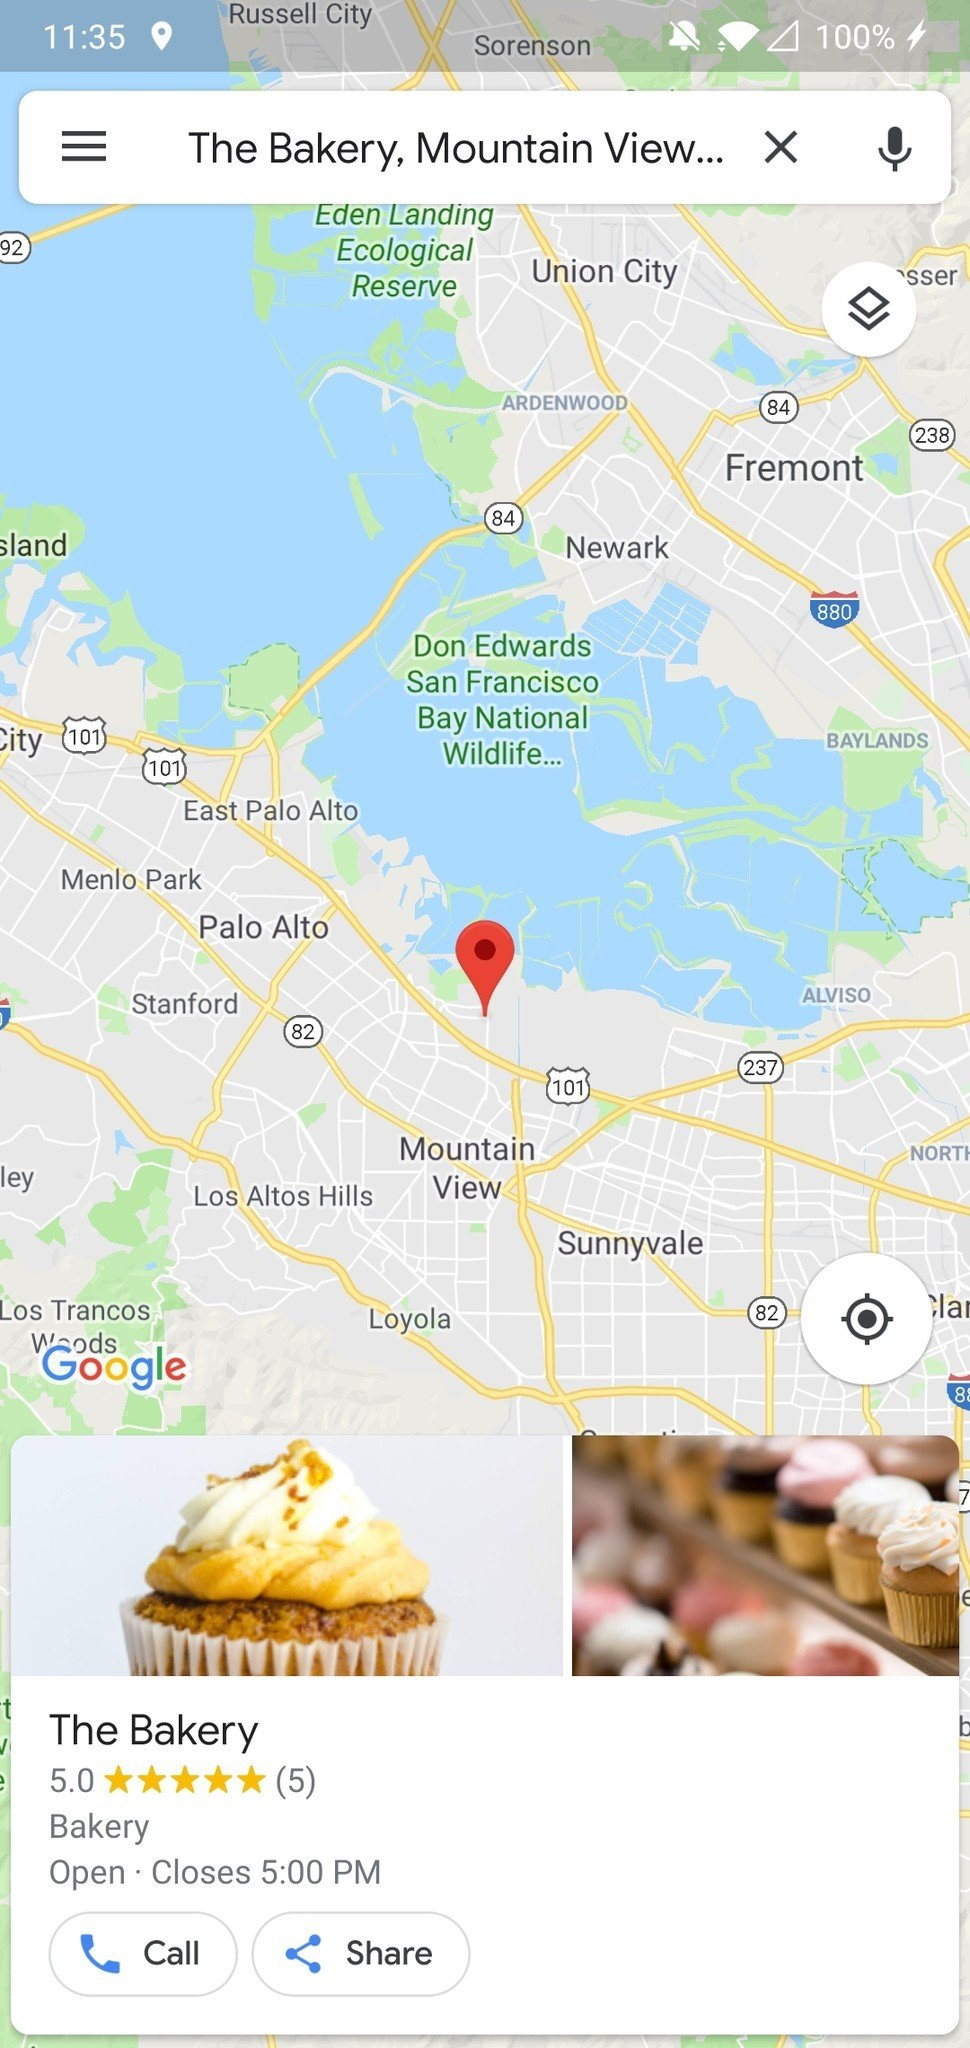 How To Use The Messaging Features In Google Maps Android